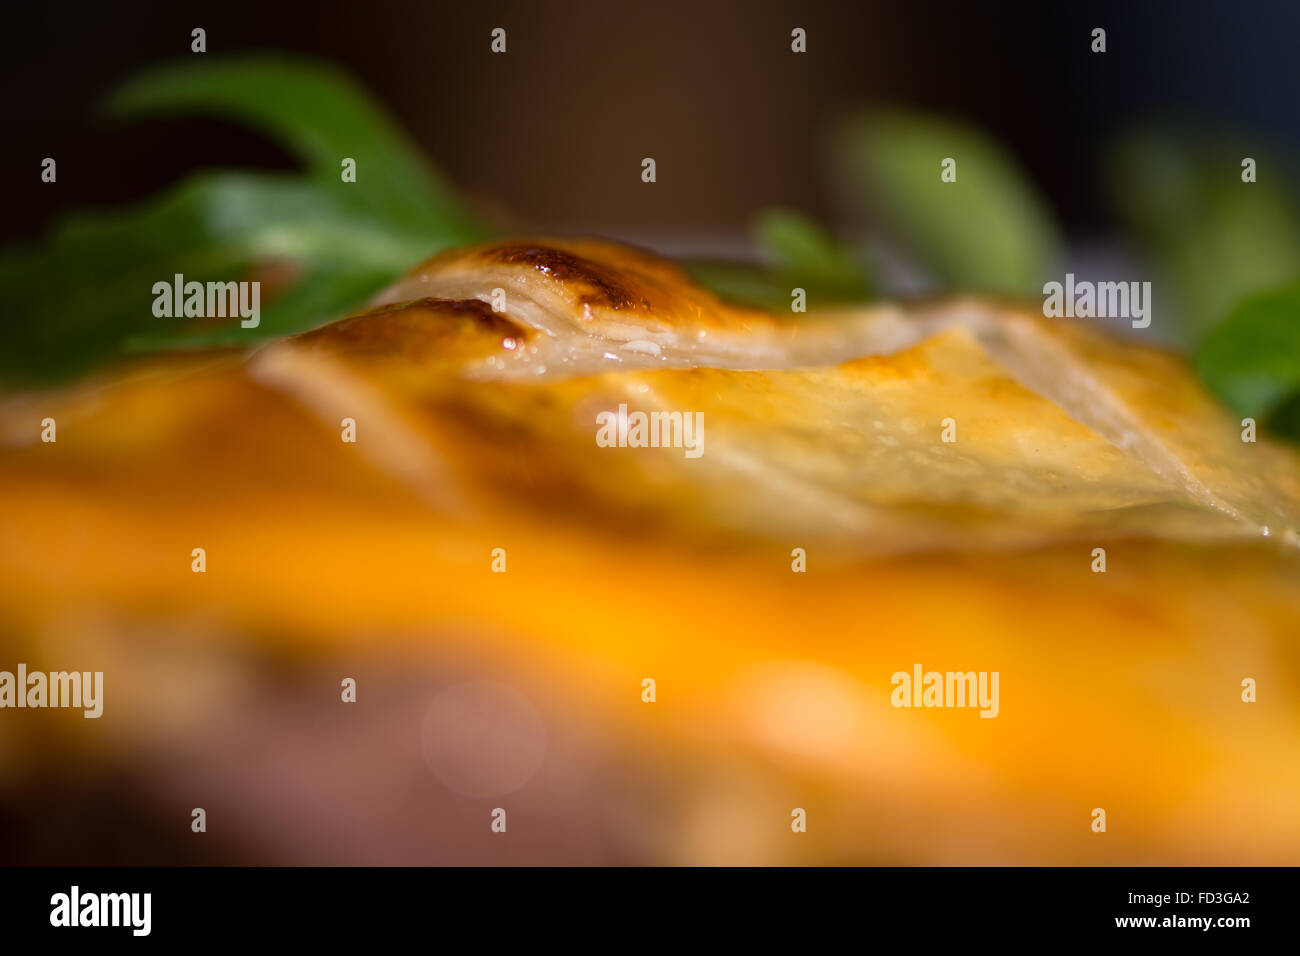 Pastry crust on steak and kidney pie. French restaurant prepared cuisine influenced by a traditional English recipe - Stock Image